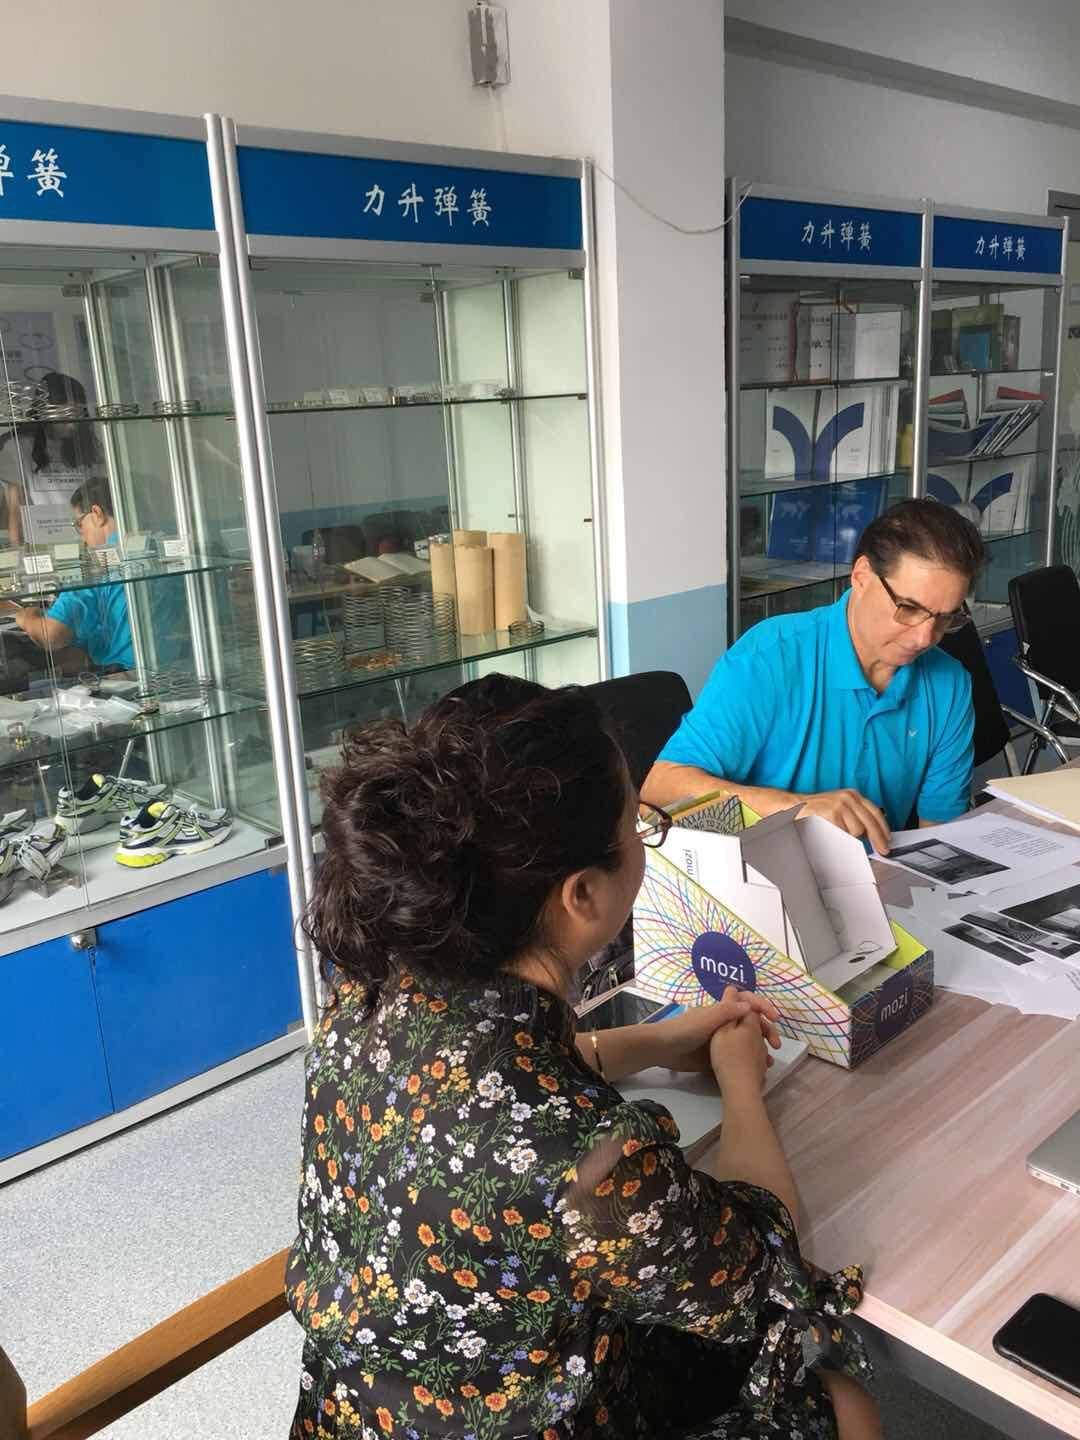 American customers visit our company